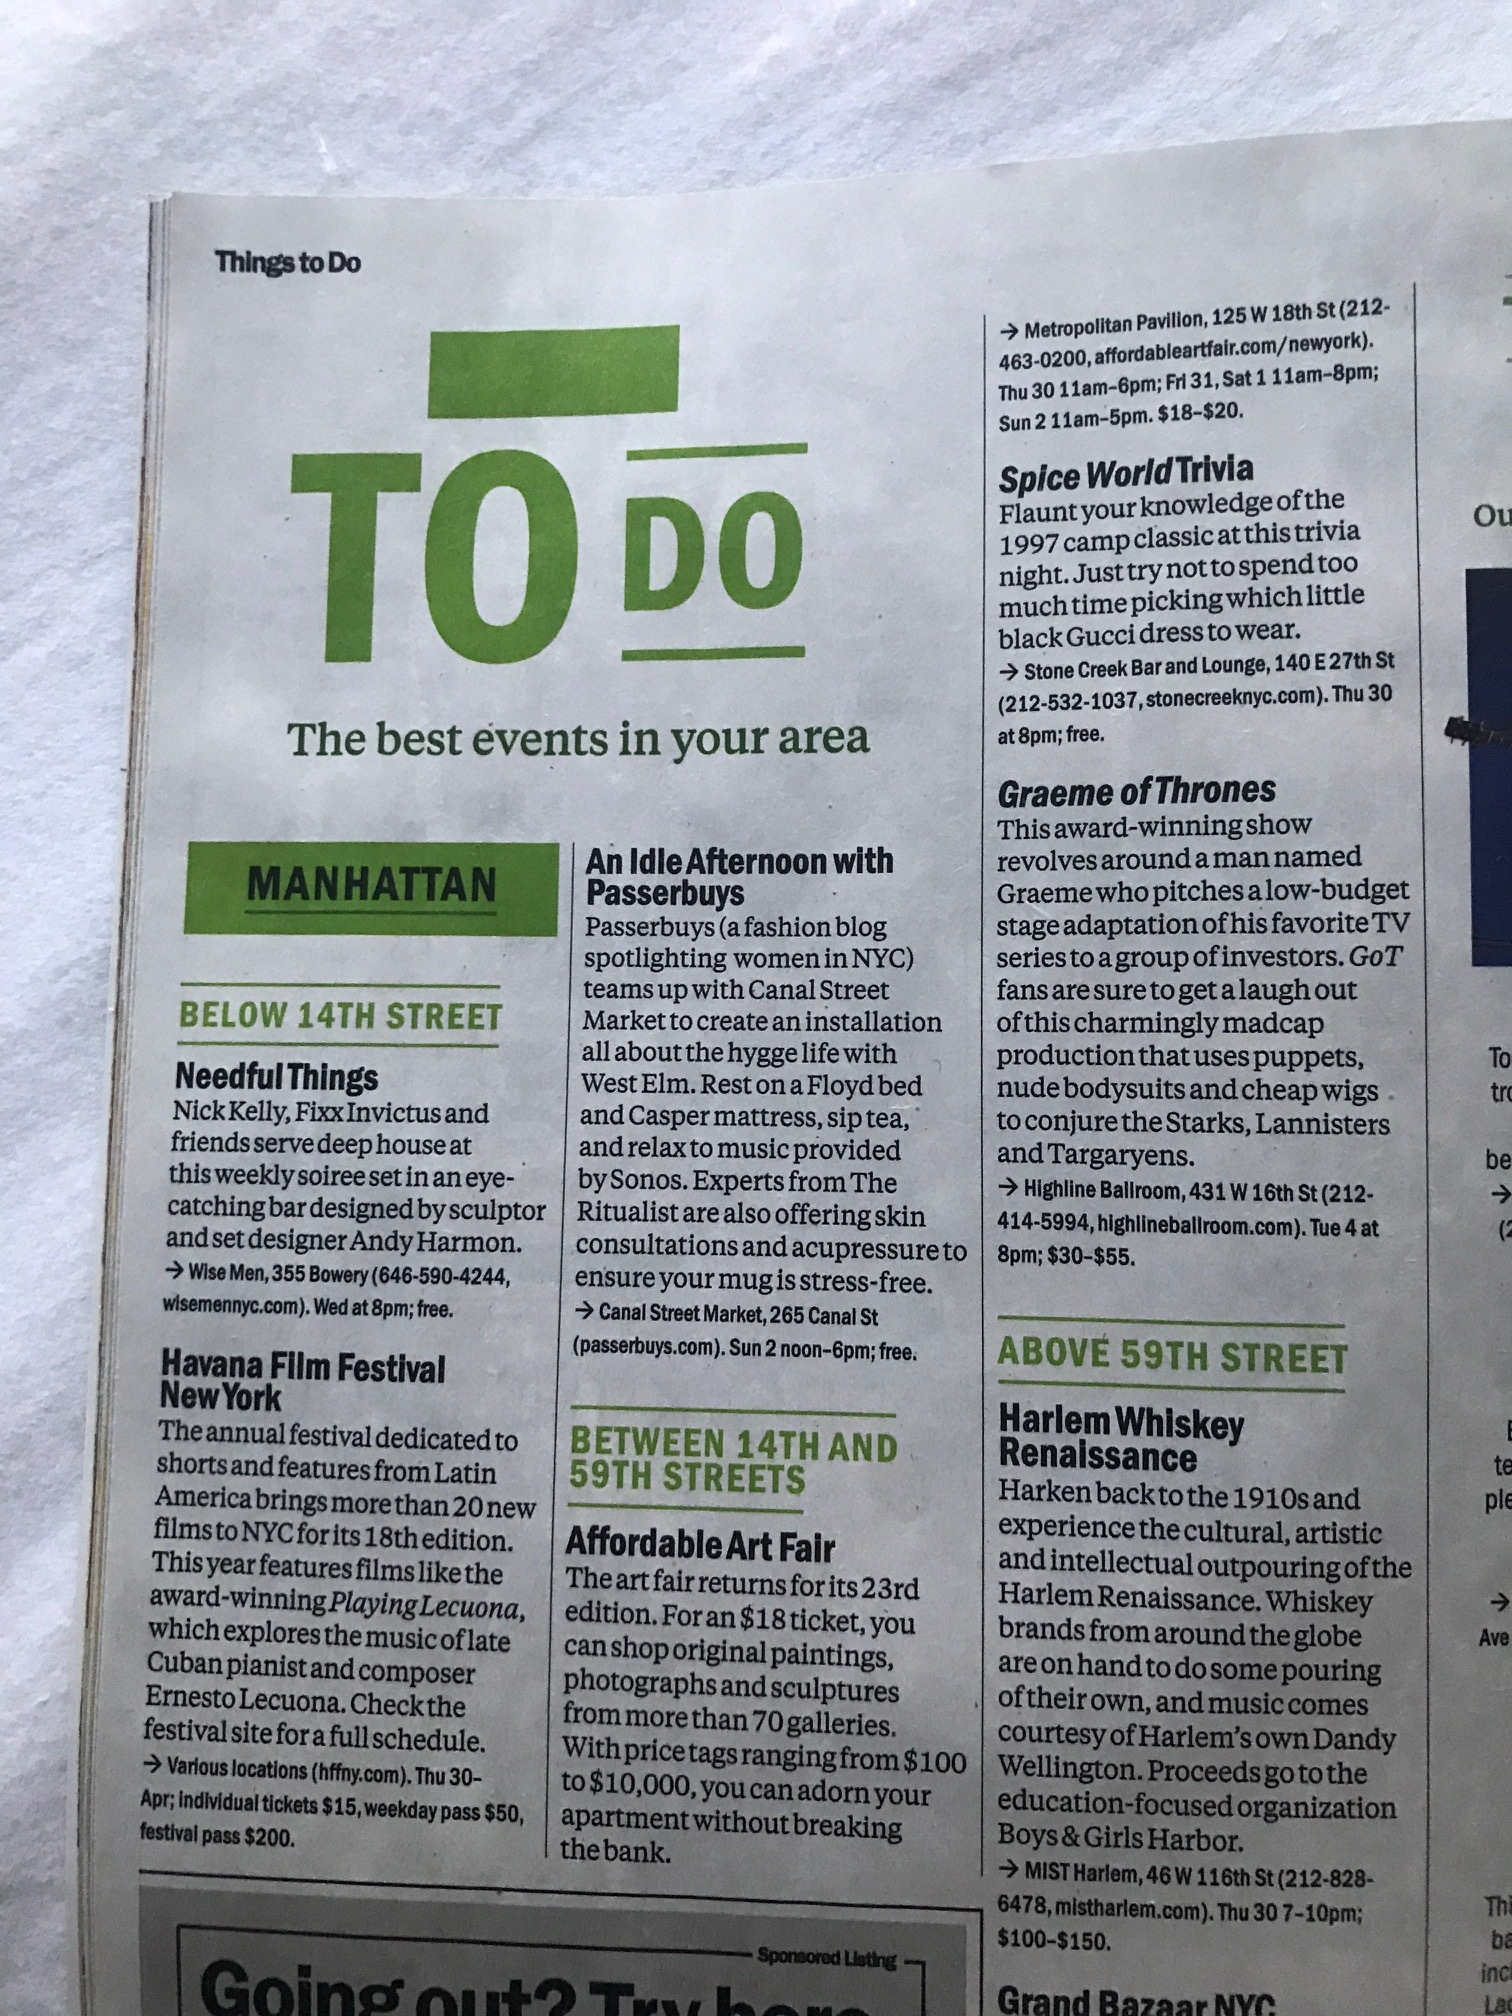 All events from the lounge featured in Timeout New York